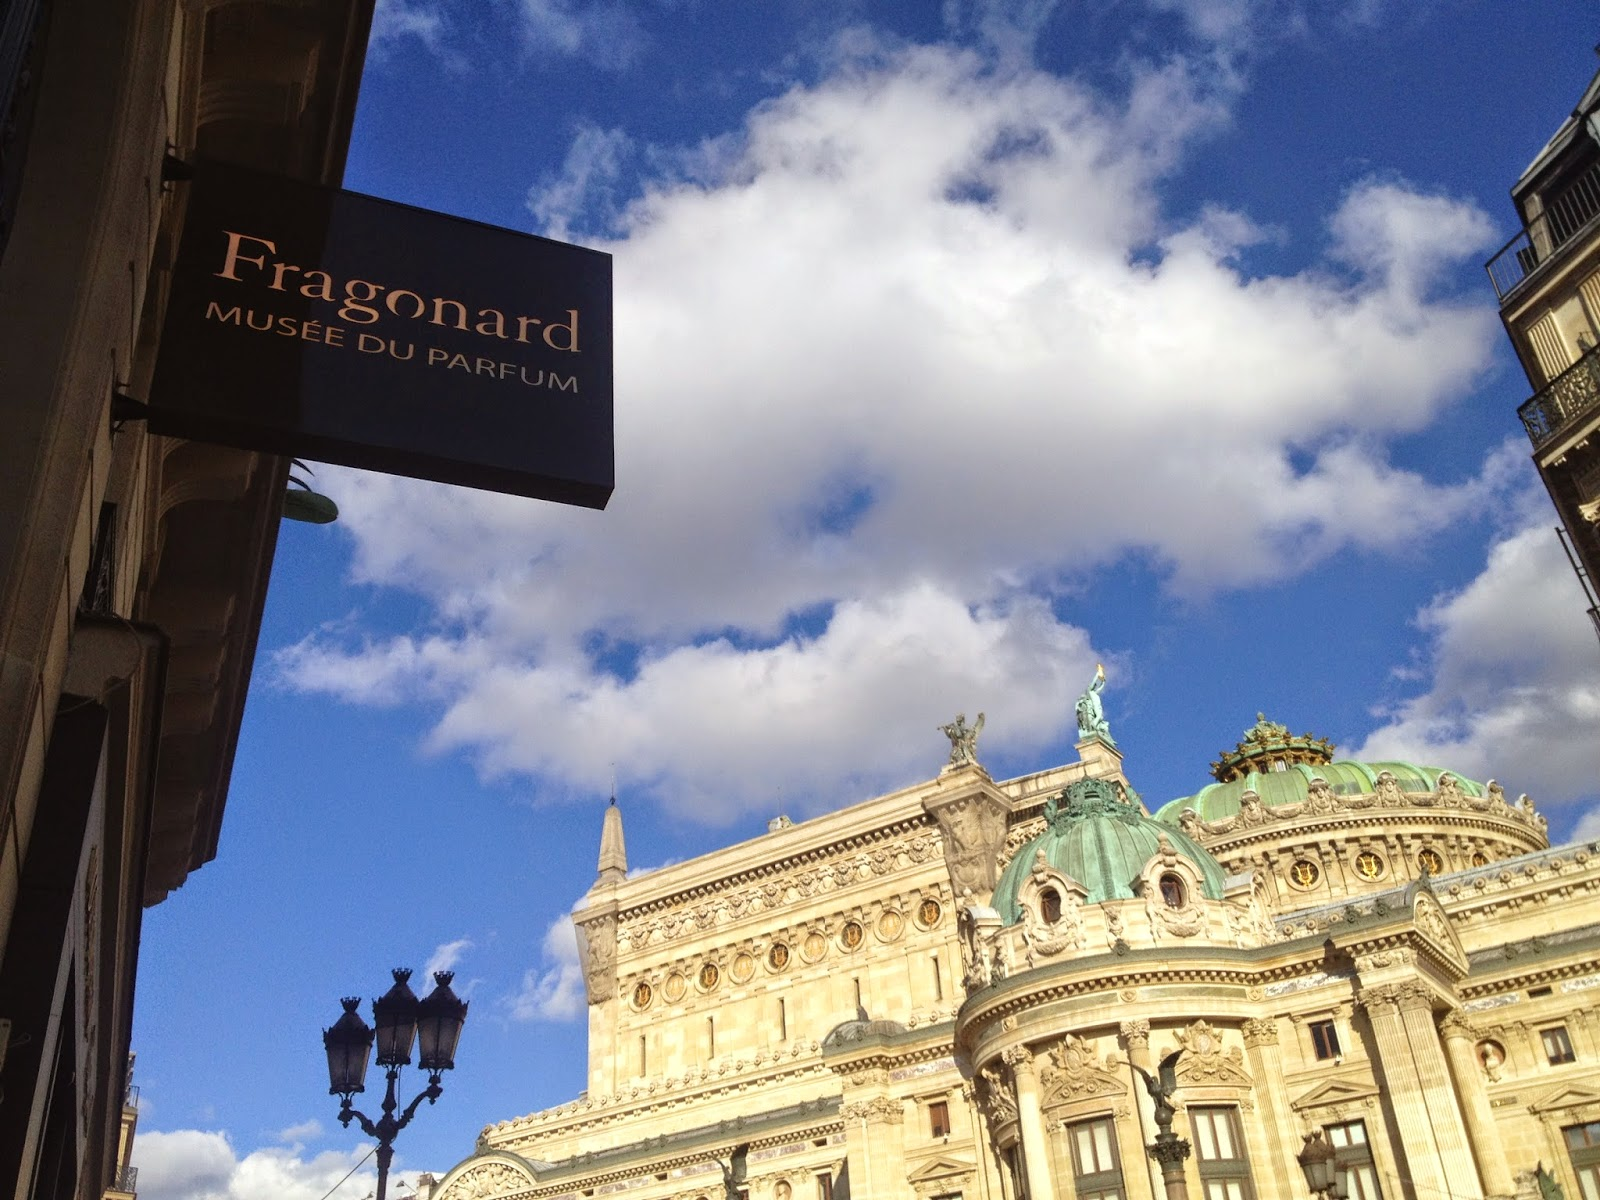 Say oui to paris fragrant fun at the fragonard mus e du parfum - Musee parfum fragonard ...